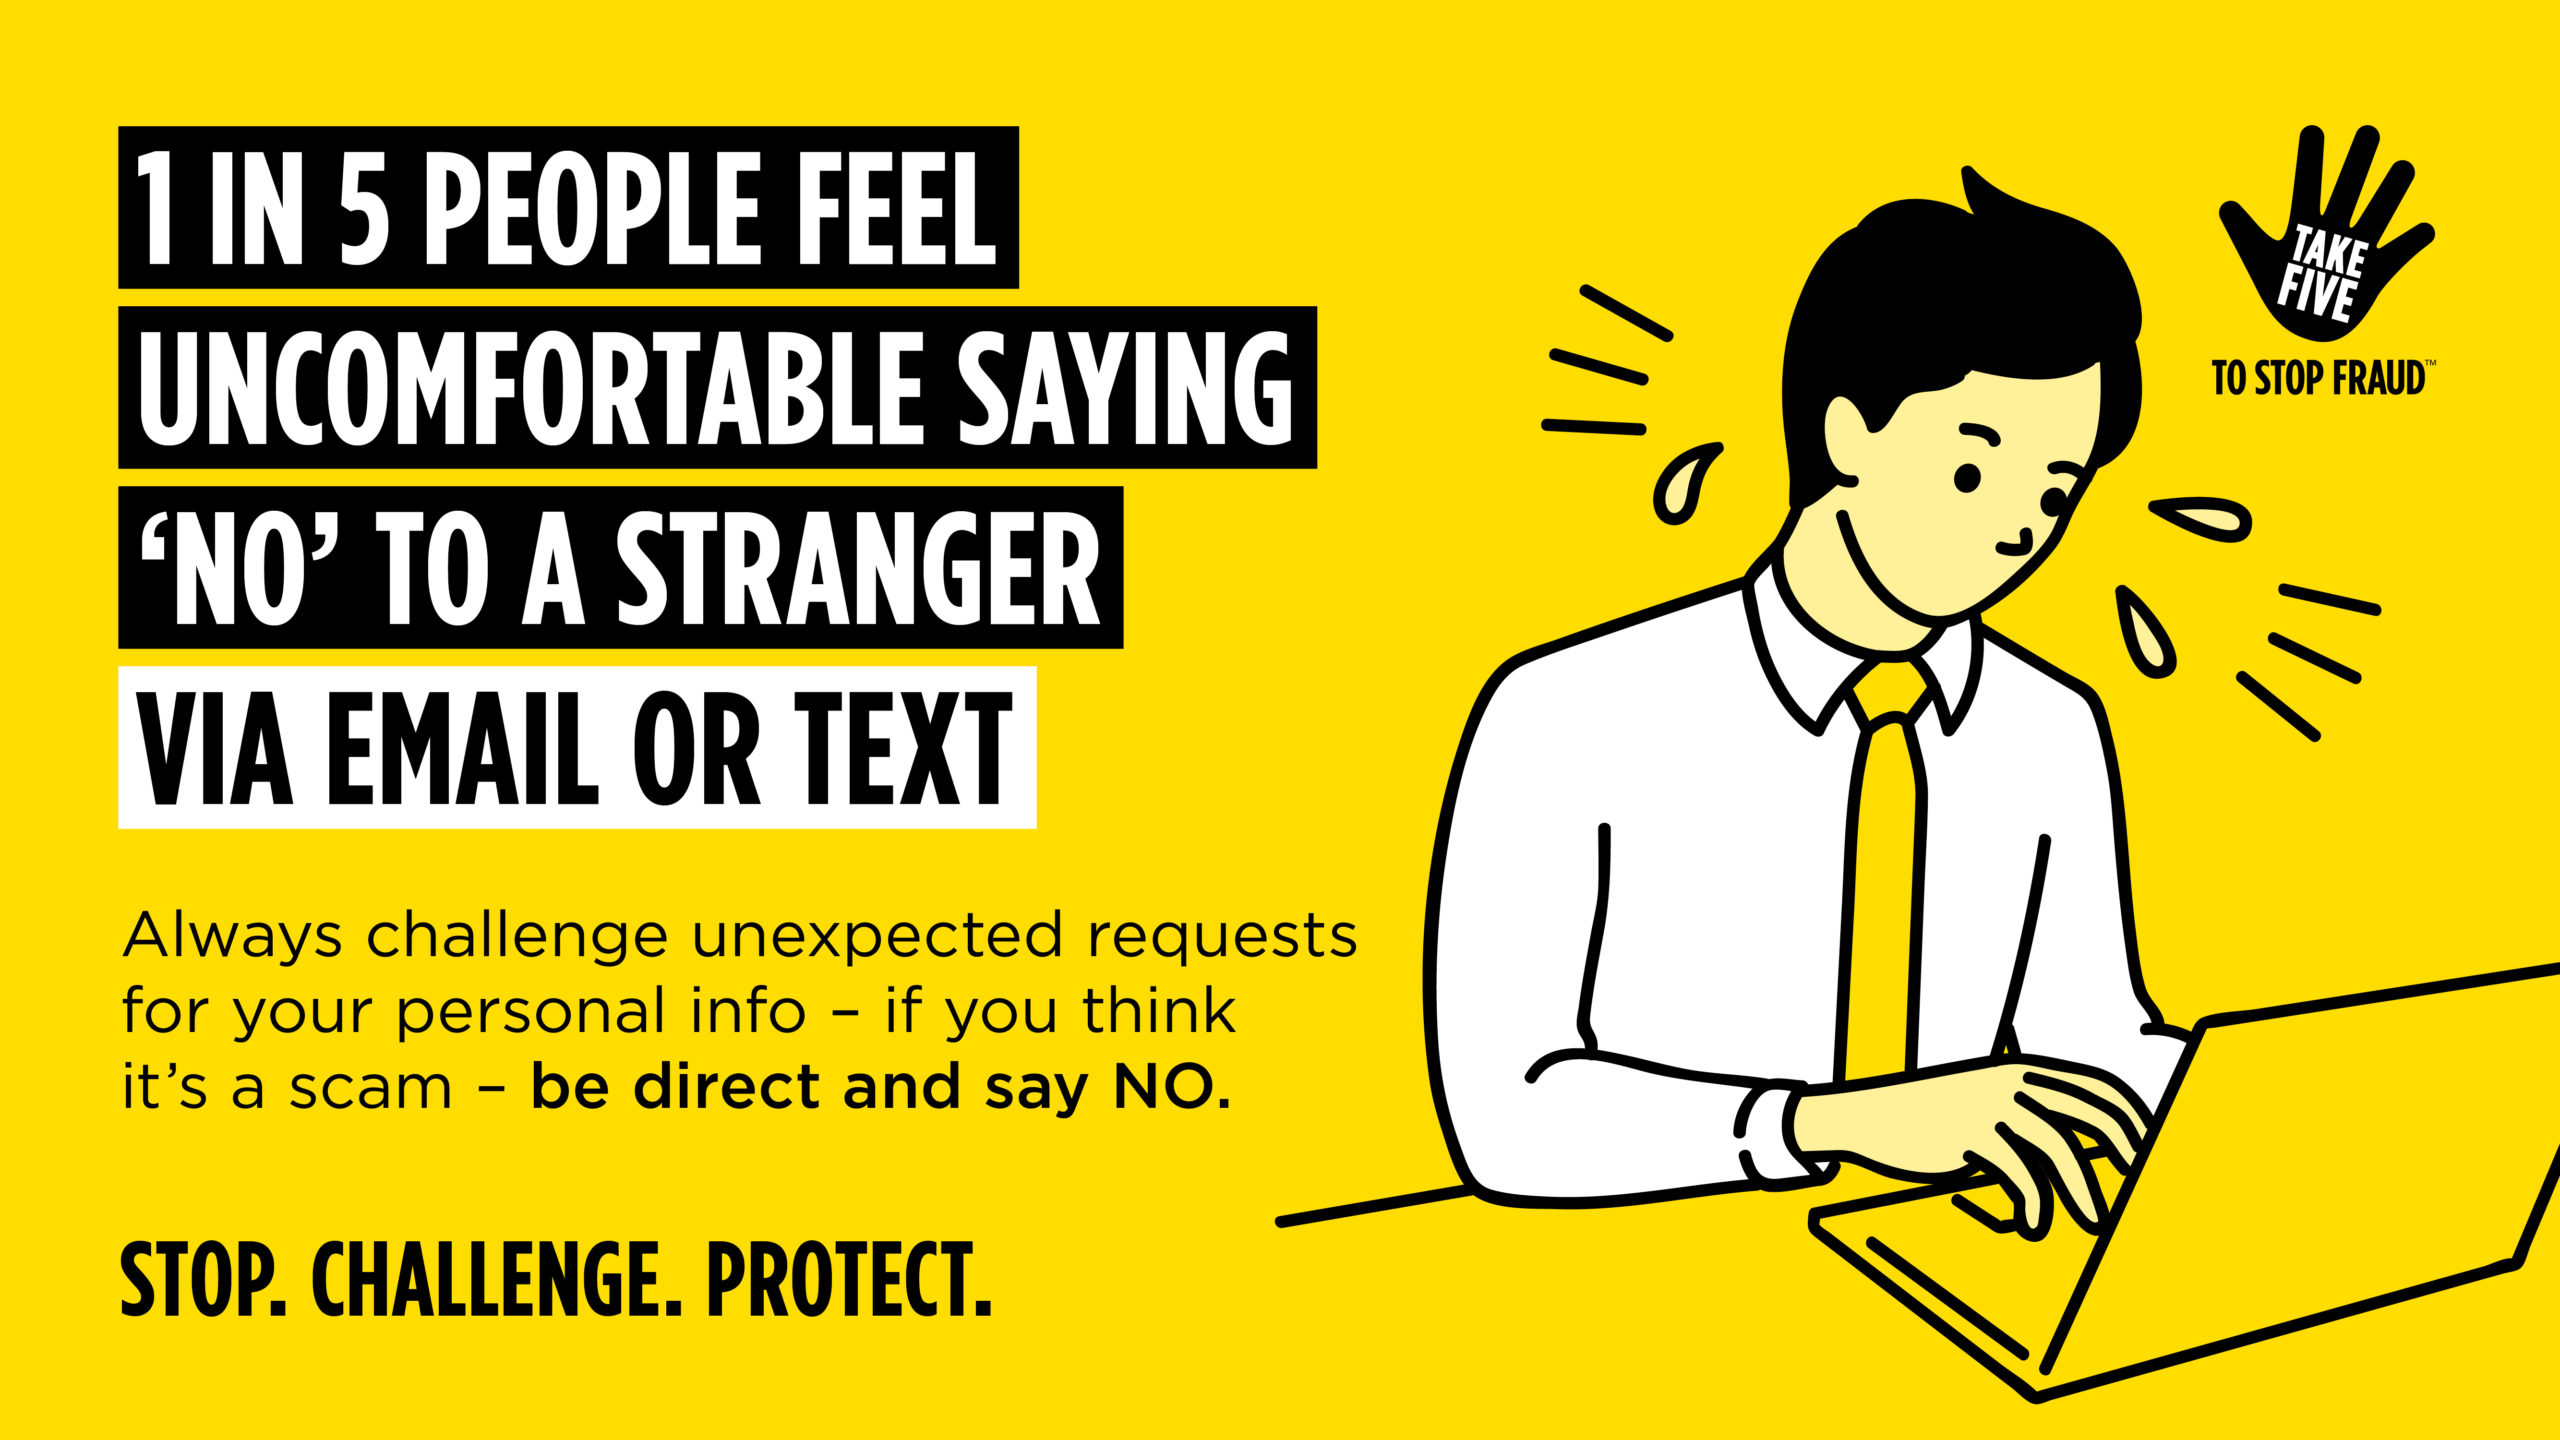 """Text says """" 1 in 5 people feel uncomfortable saying 'No' to a stranger via email or text. Always challenge unexpected requests for your personal info - if you think it's a scam - be direct and say NO. Stop. Challenge. Protect"""""""